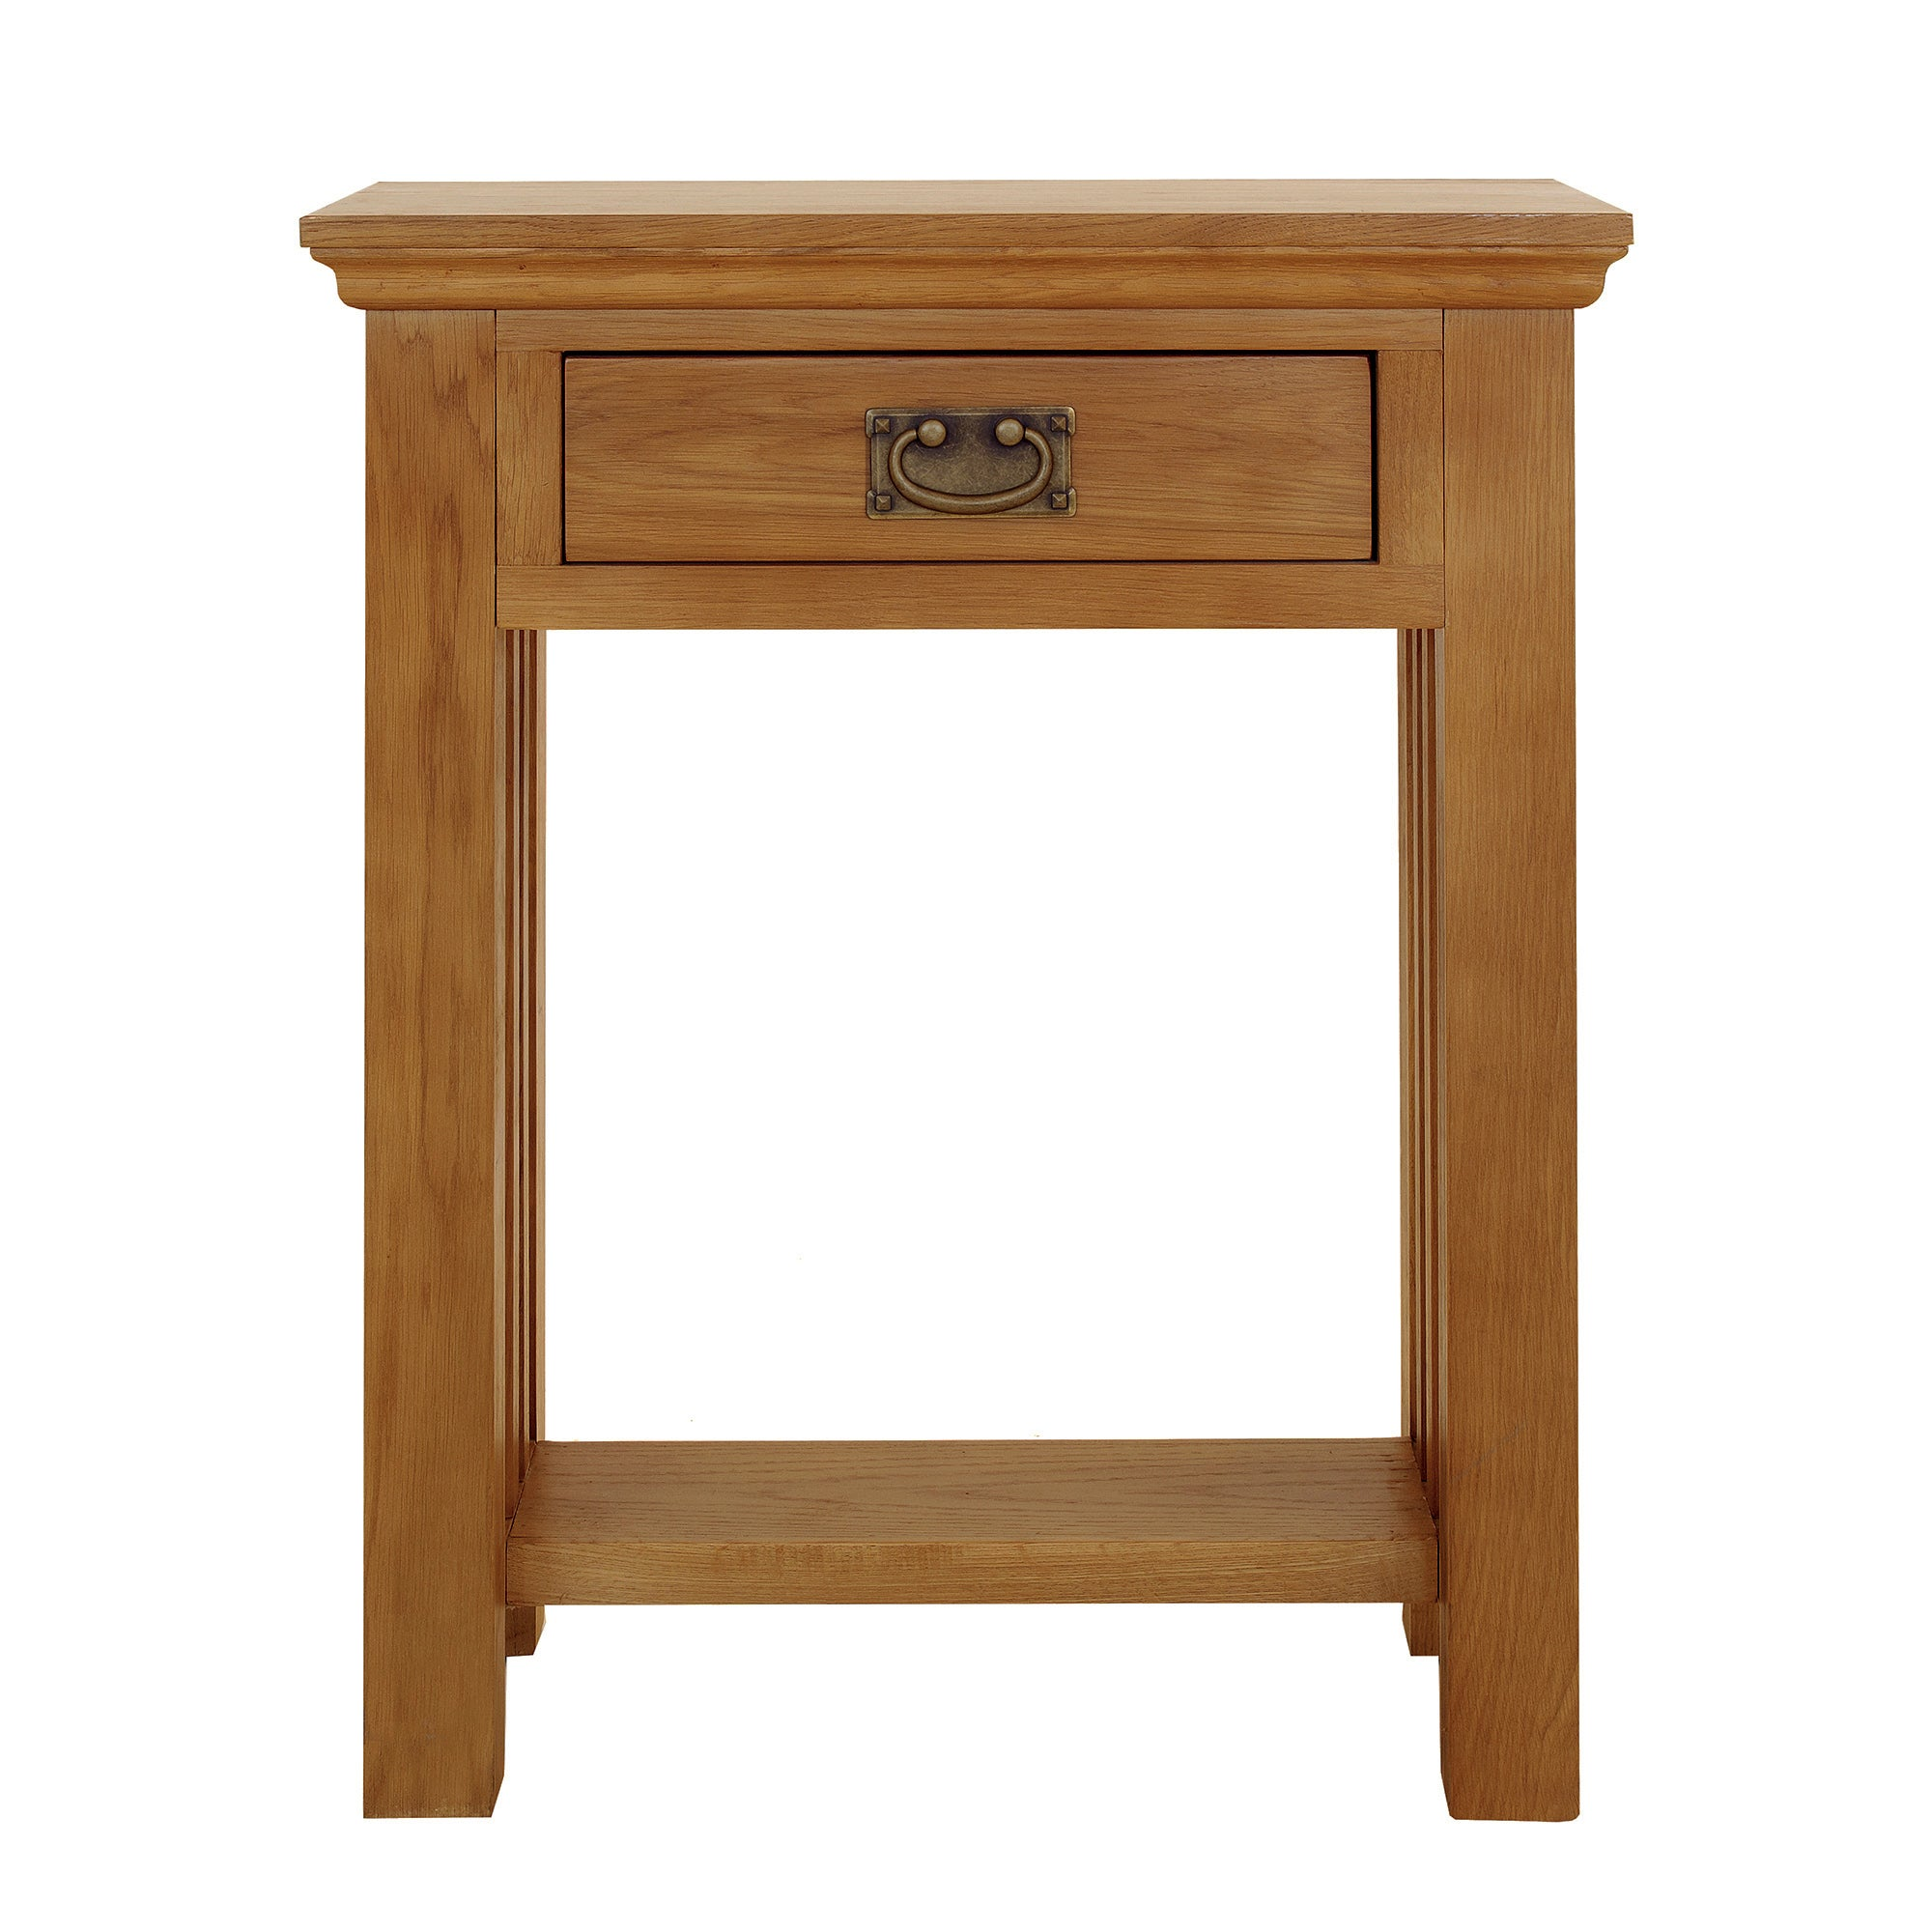 Photo of Dorchester oak telephone table light brown / natural